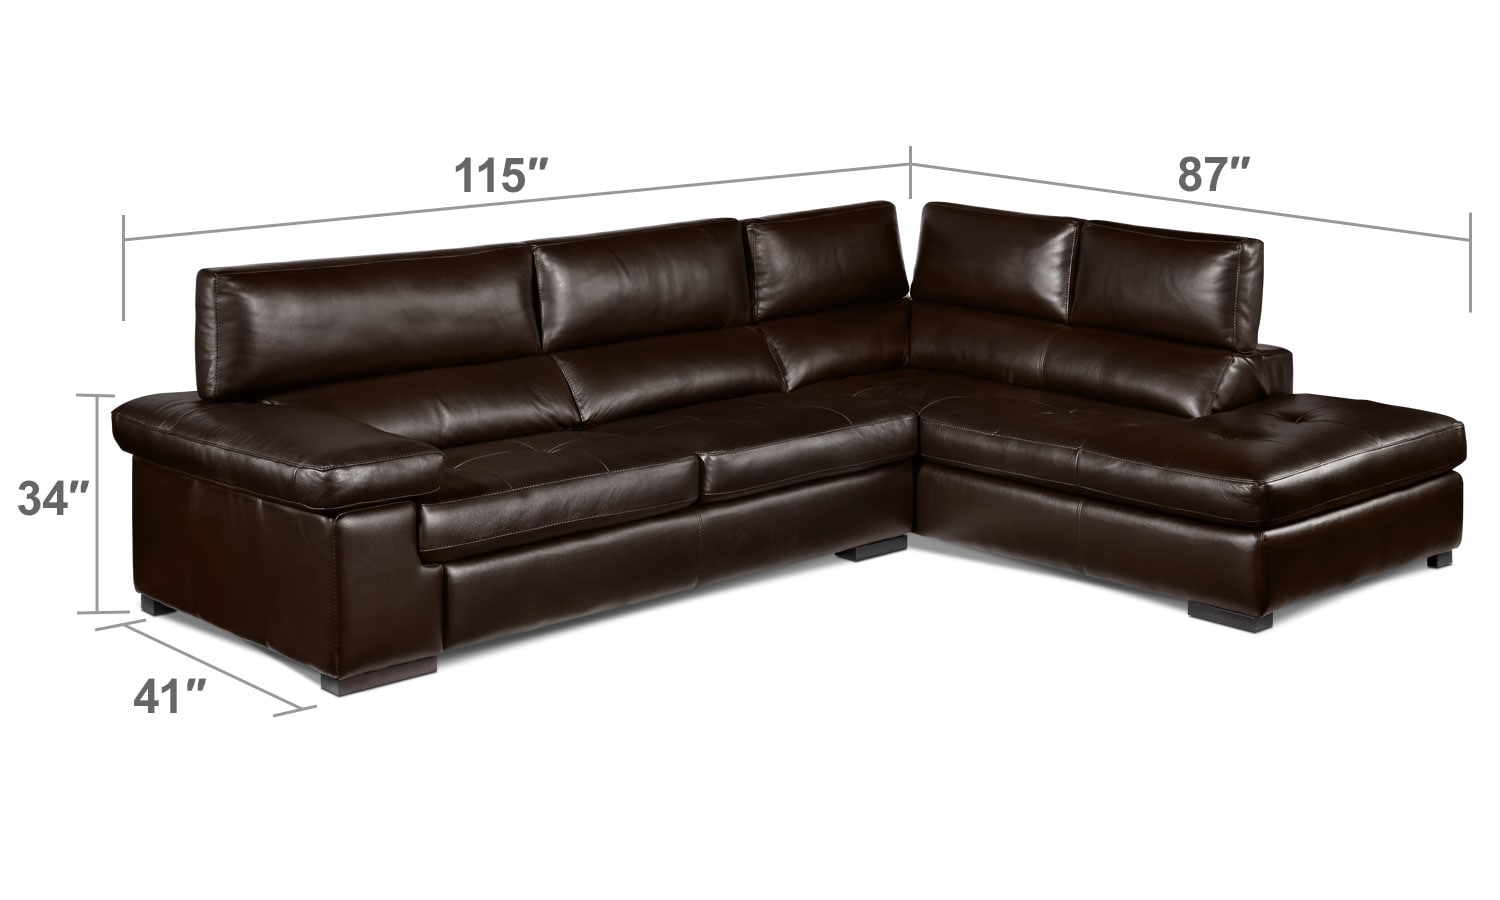 Living Room Furniture - Underwood 2-Piece Right-Facing Sectional - Espresso